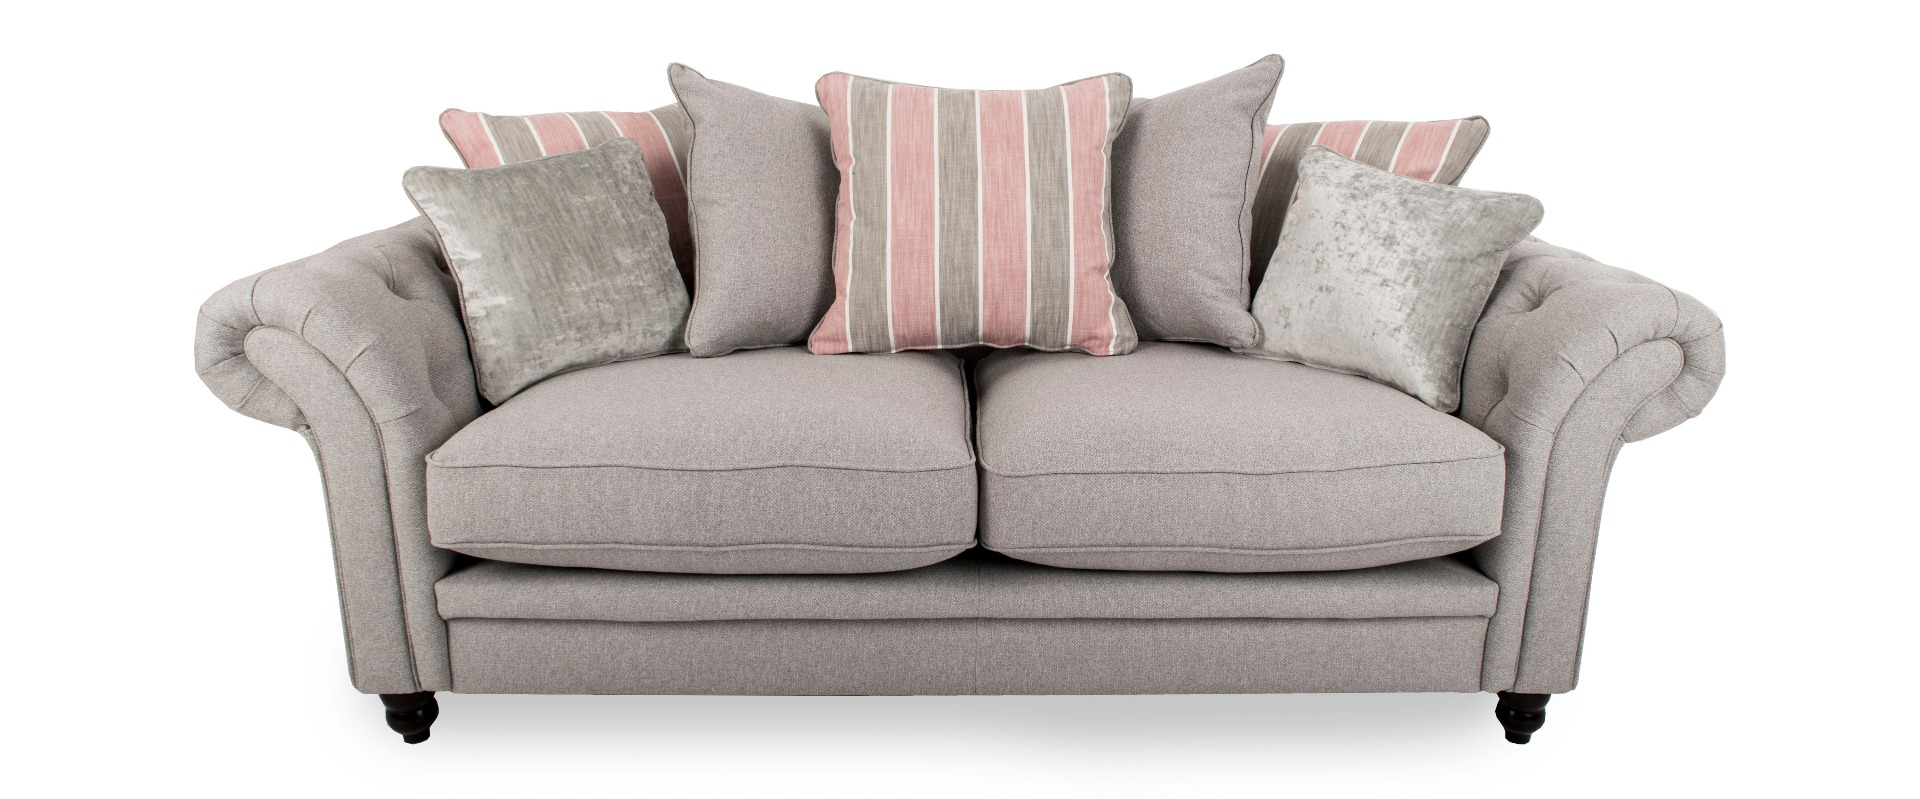 Sofa And Home Voucher Code Charlesville Fabric 3 Seater Sofa